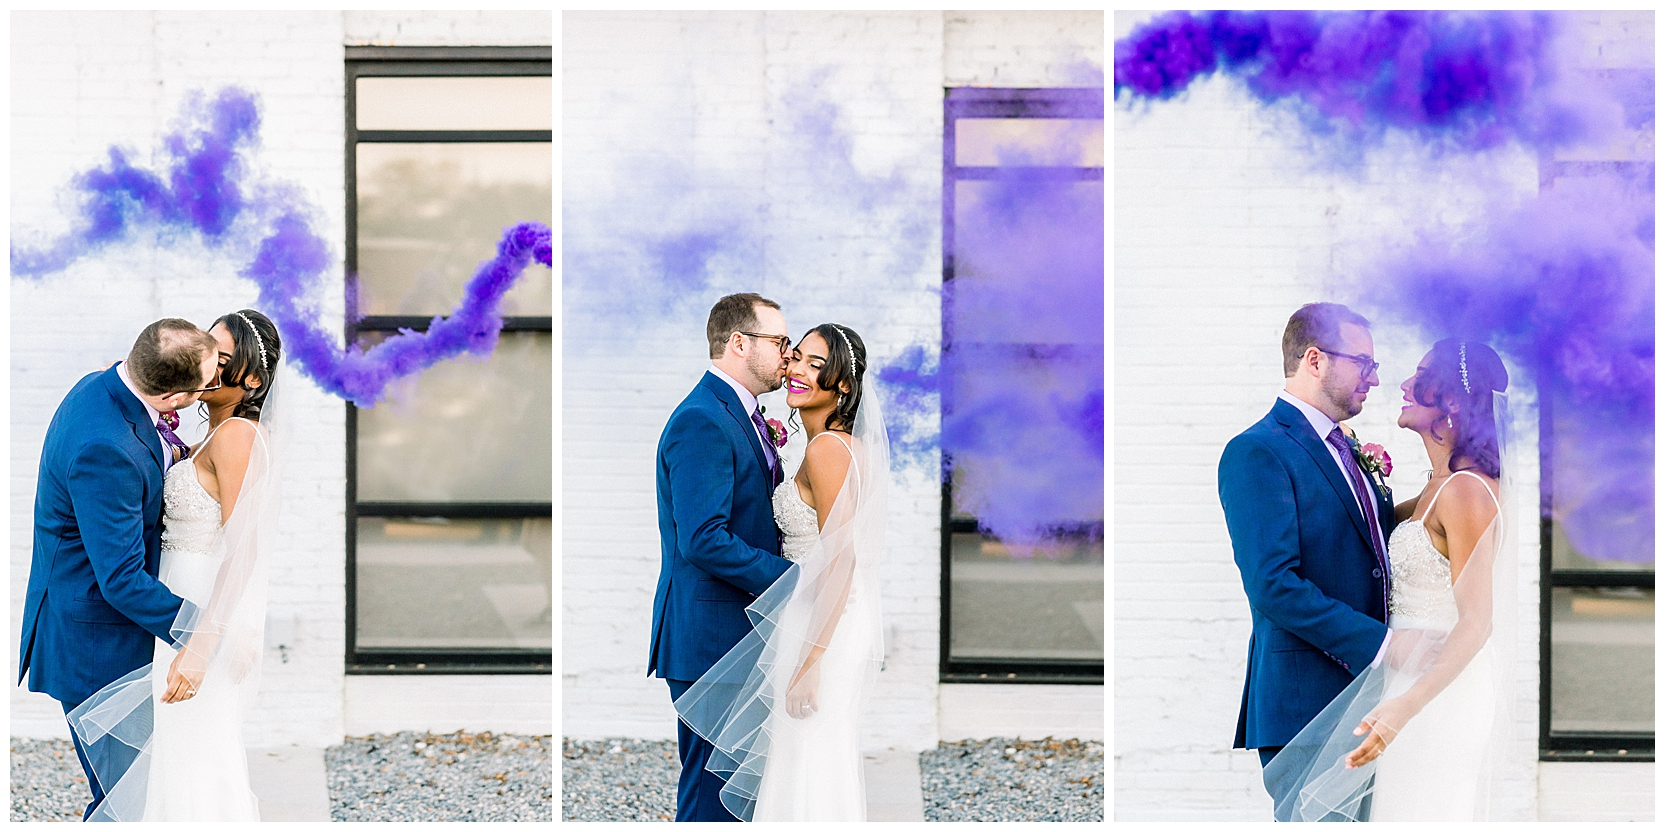 jessicafredericks_lakeland_tampa_wedding_purple_crazy hour_0058.jpg